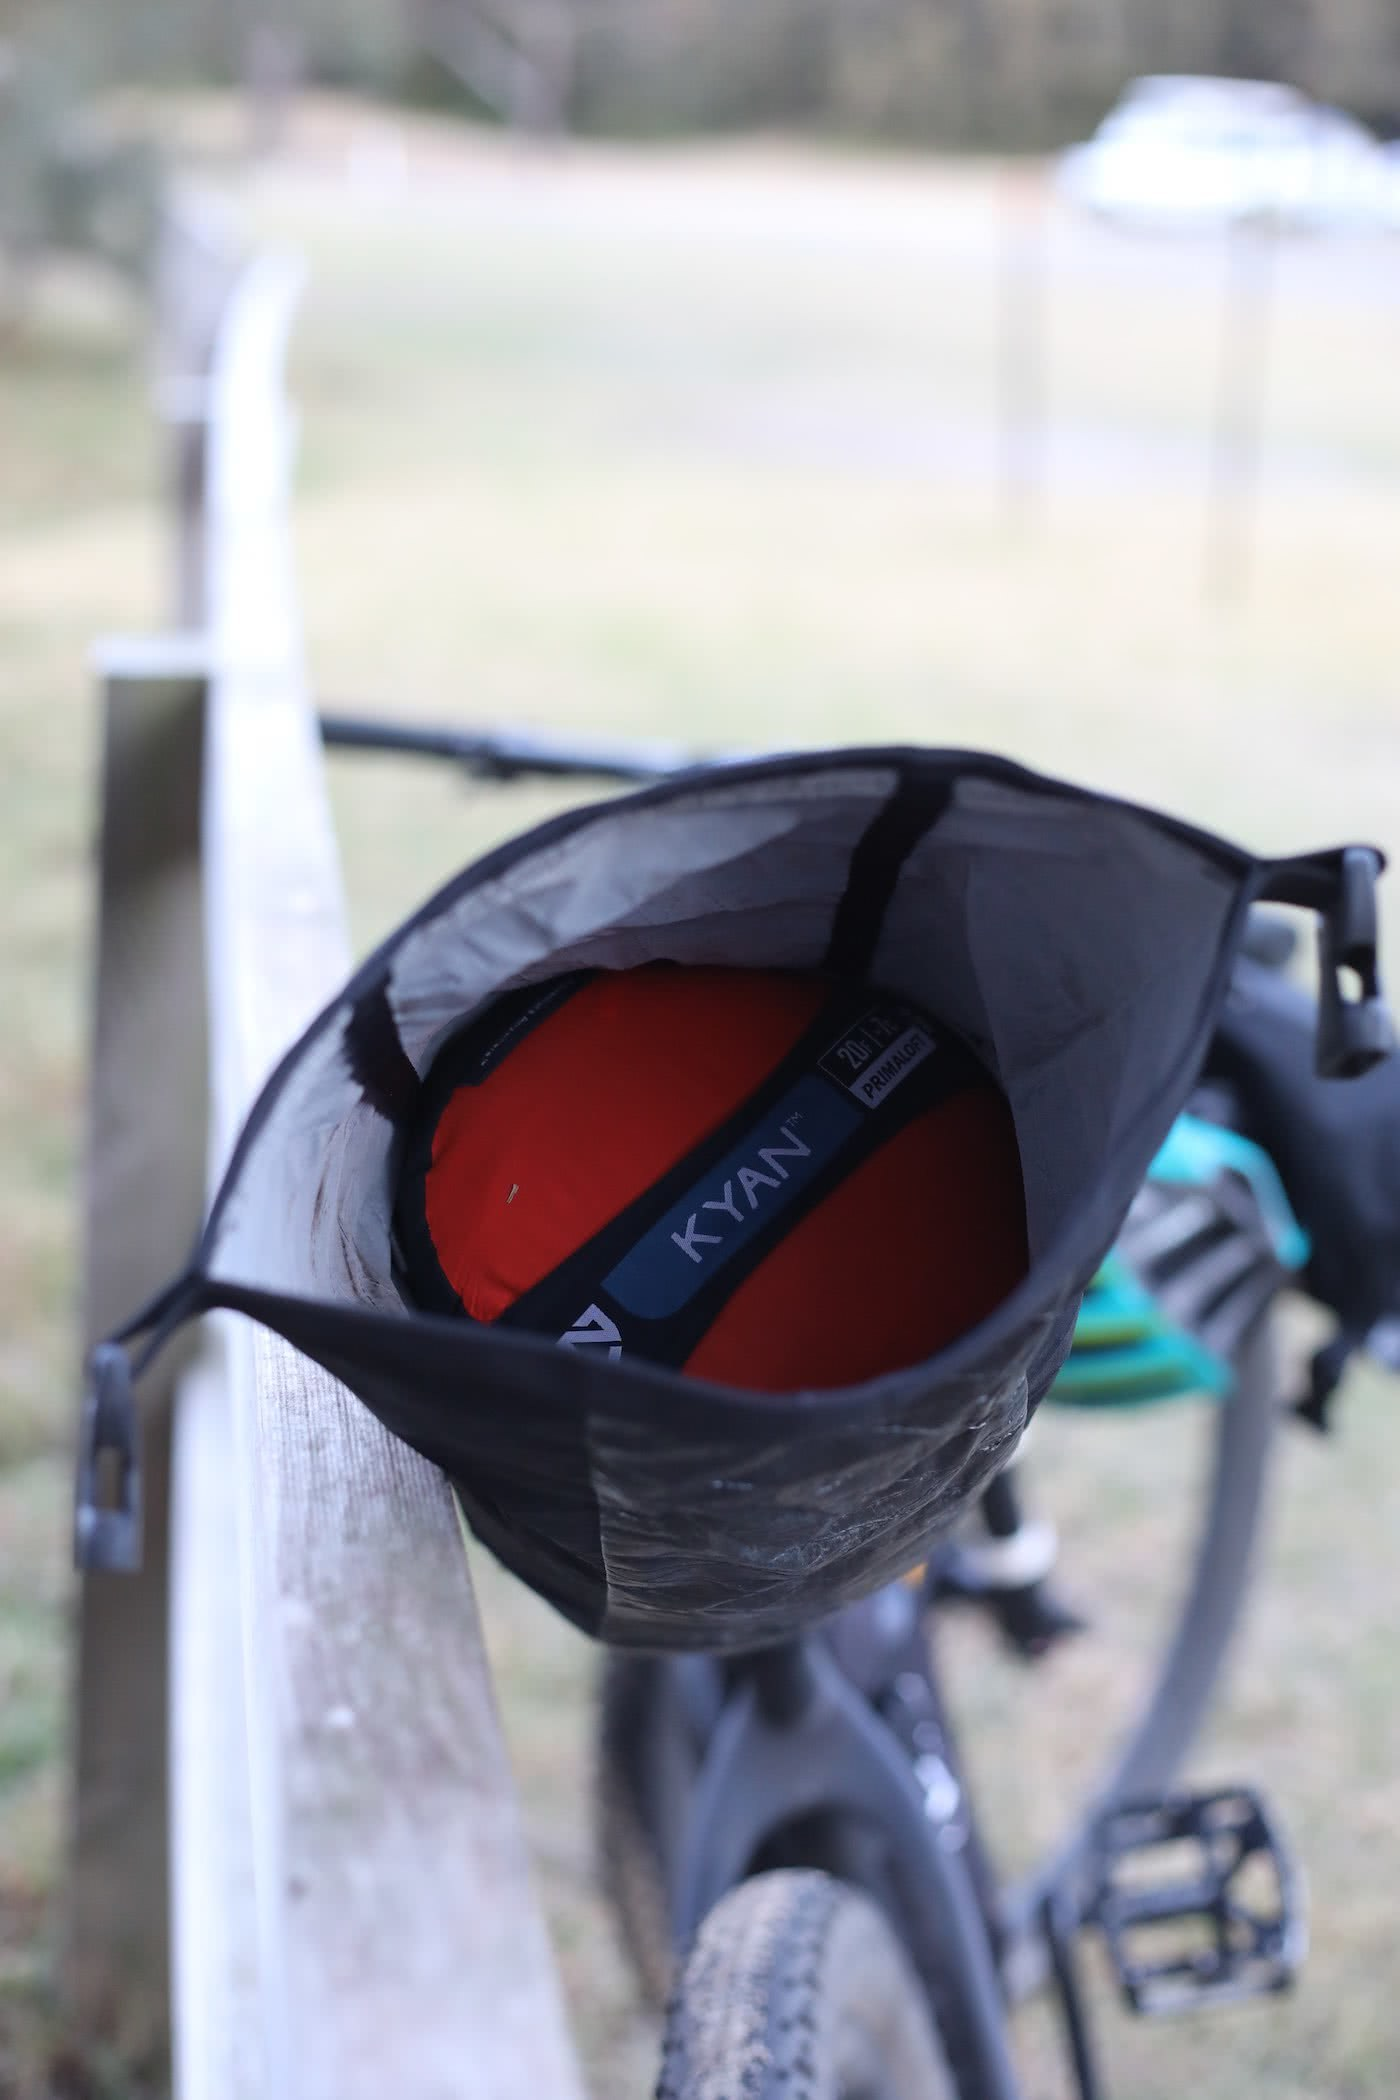 NEMO Kyan Mummy Bag & Tensor Ultralight Sleeping Pad // Gear Review by Mattie Gould Kyan bag on the bike